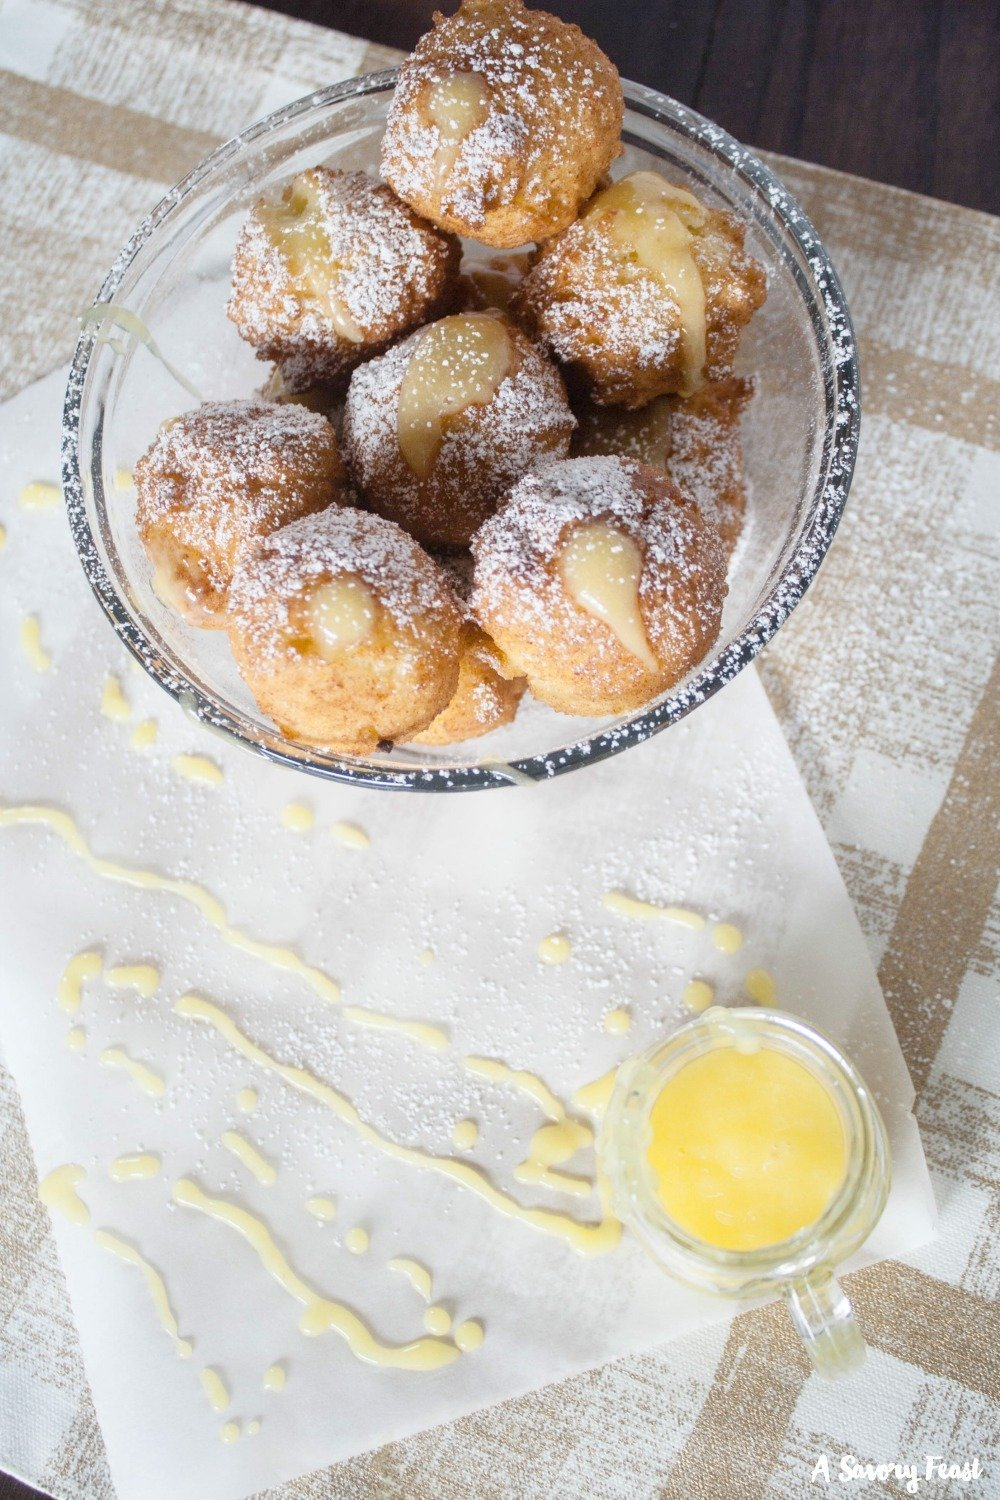 Lemon and ricotta come together in this delicious homemade donut hole recipe!